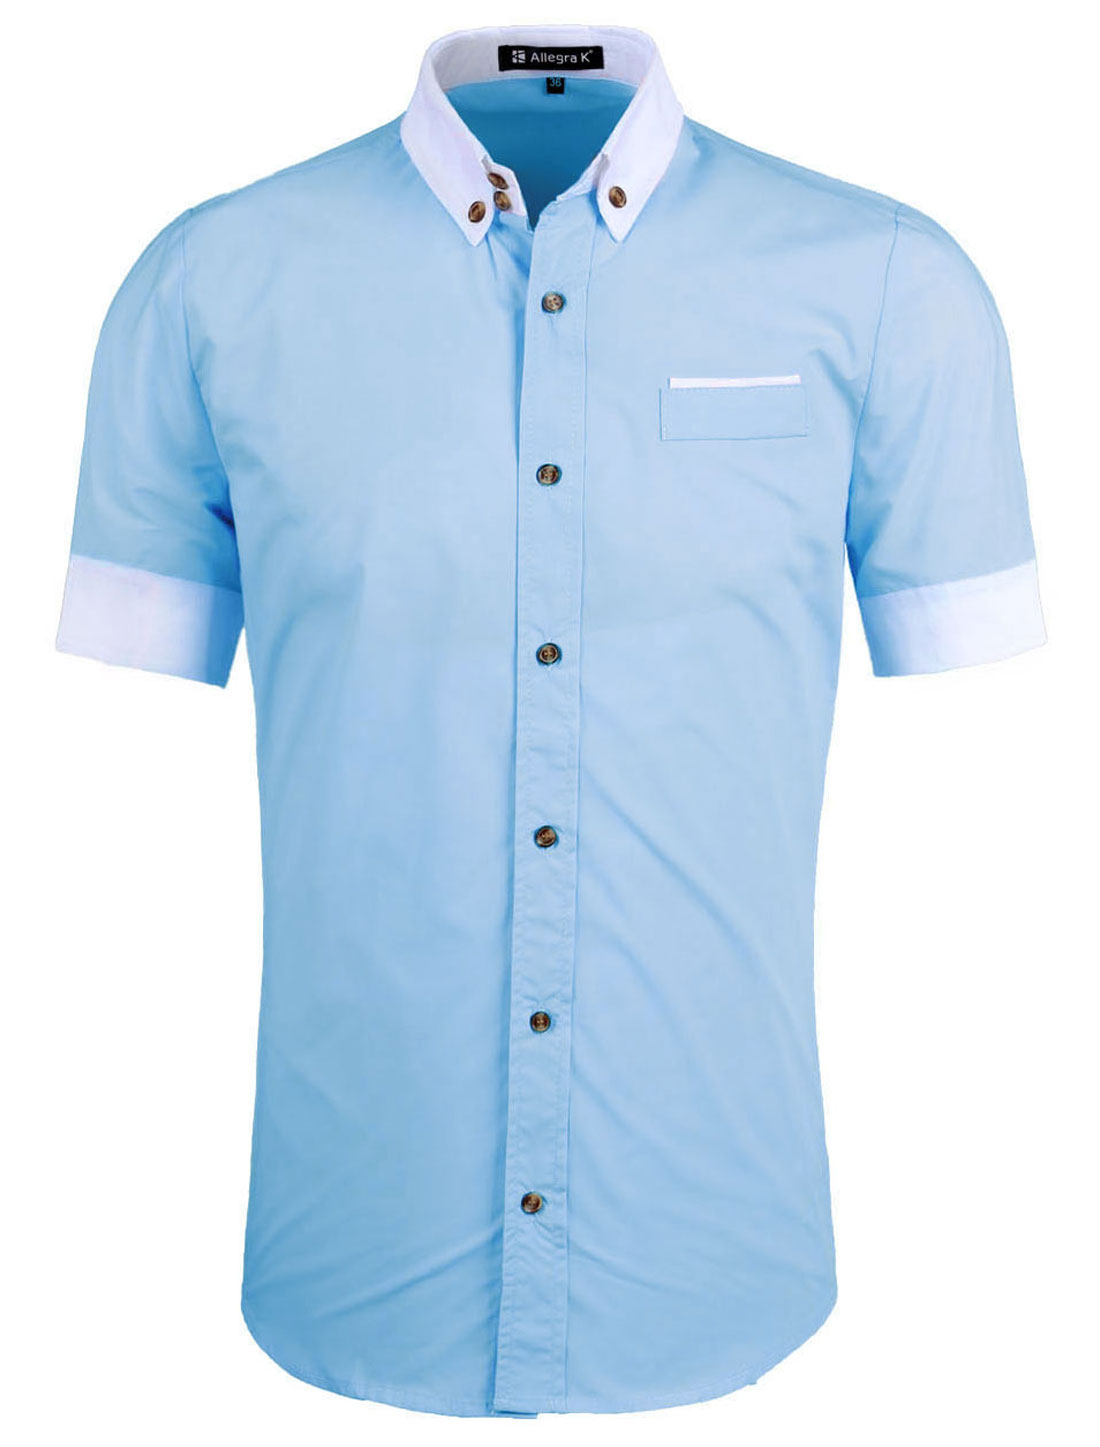 Men Point Collar Contrast Trim Button Down Short Sleeve Shirt Light Blue M